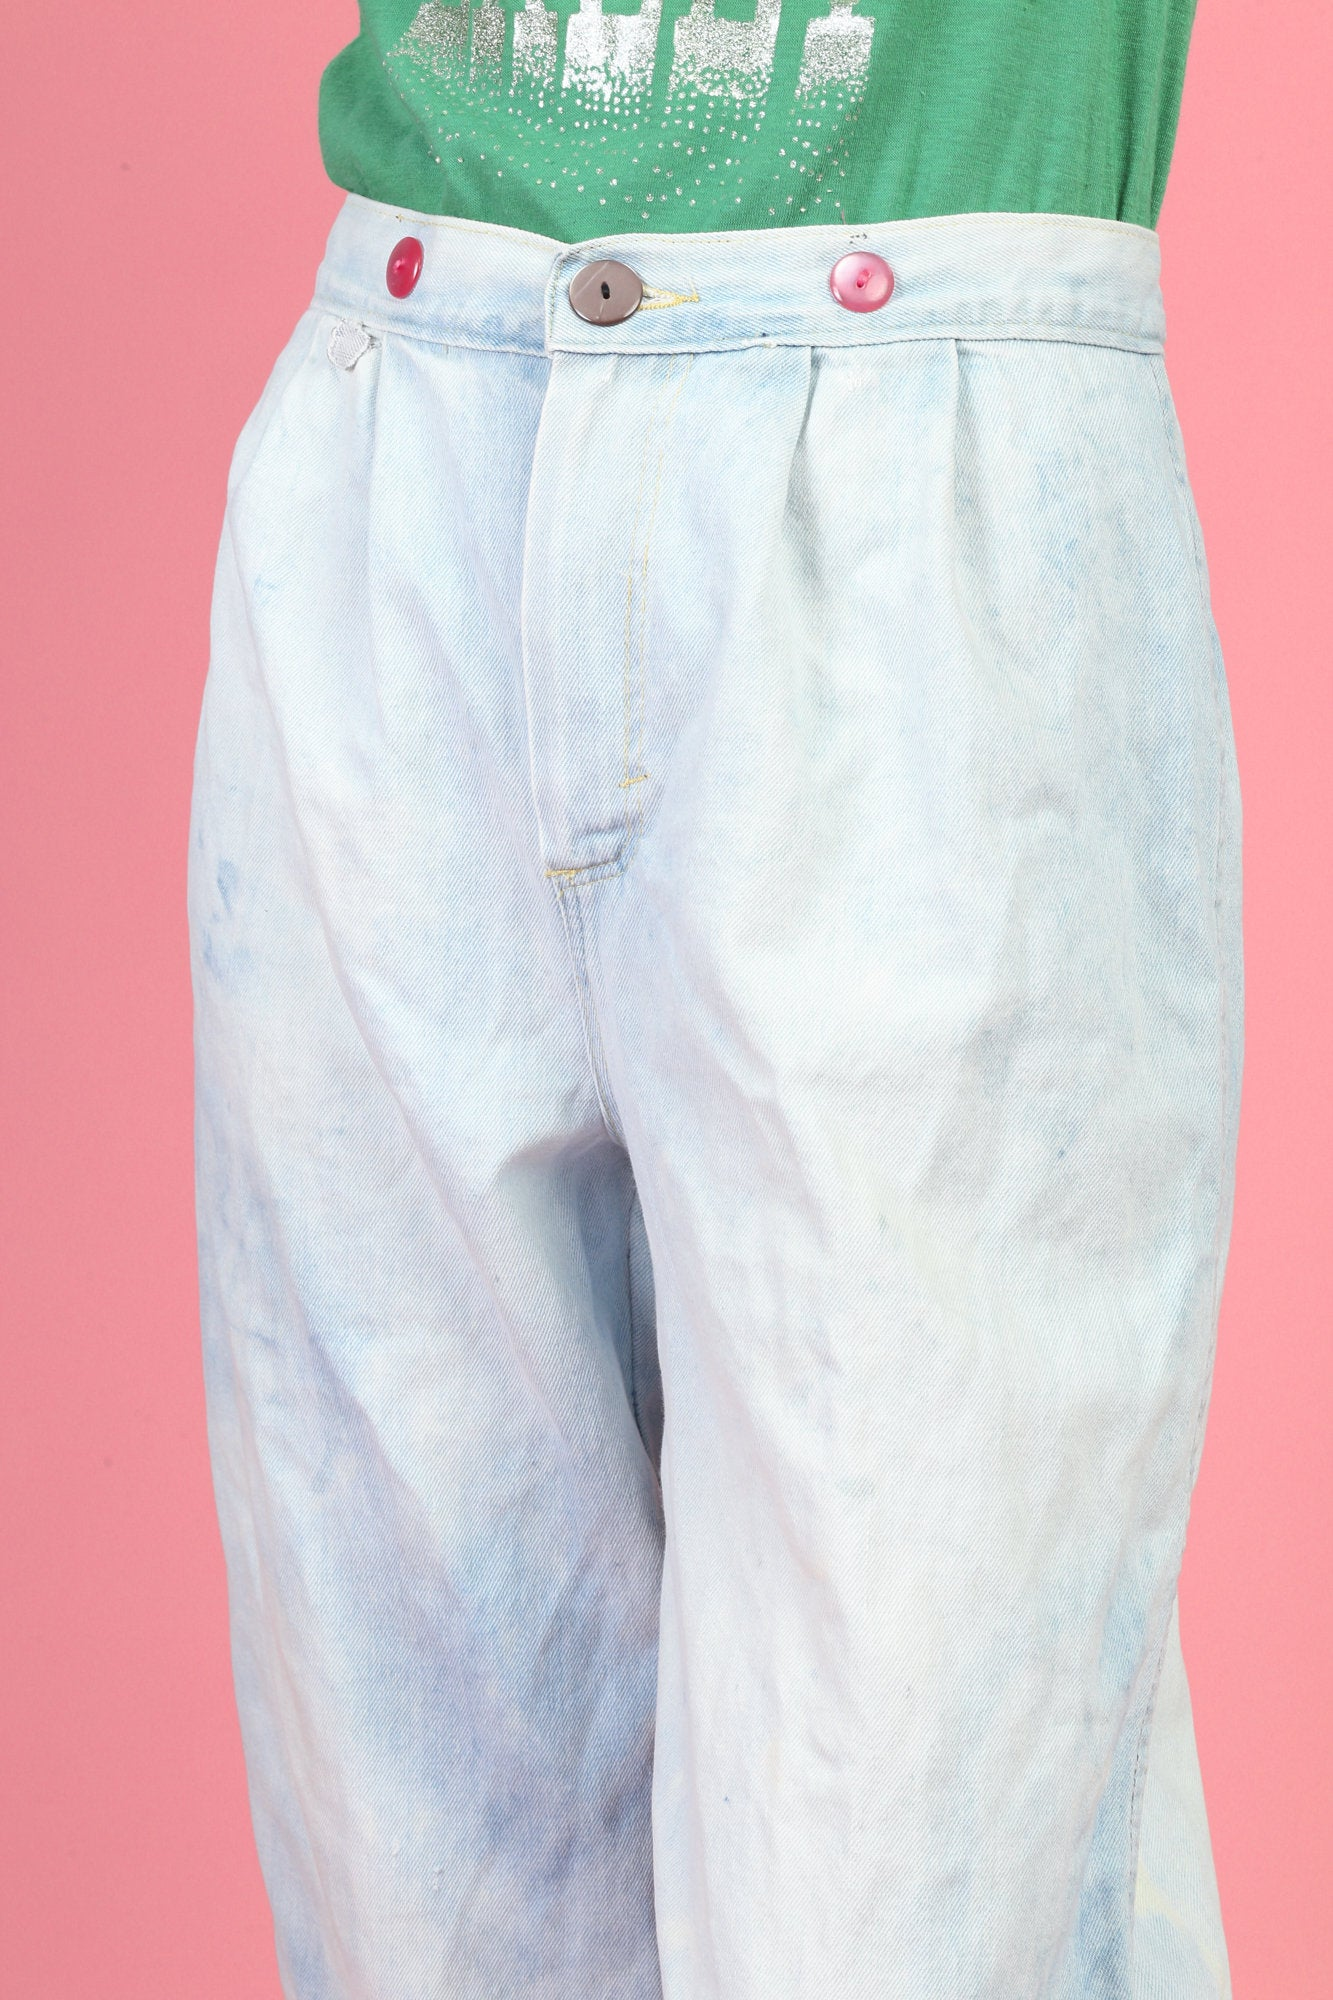 80s Bleached Denim Cropped Jeans - Medium